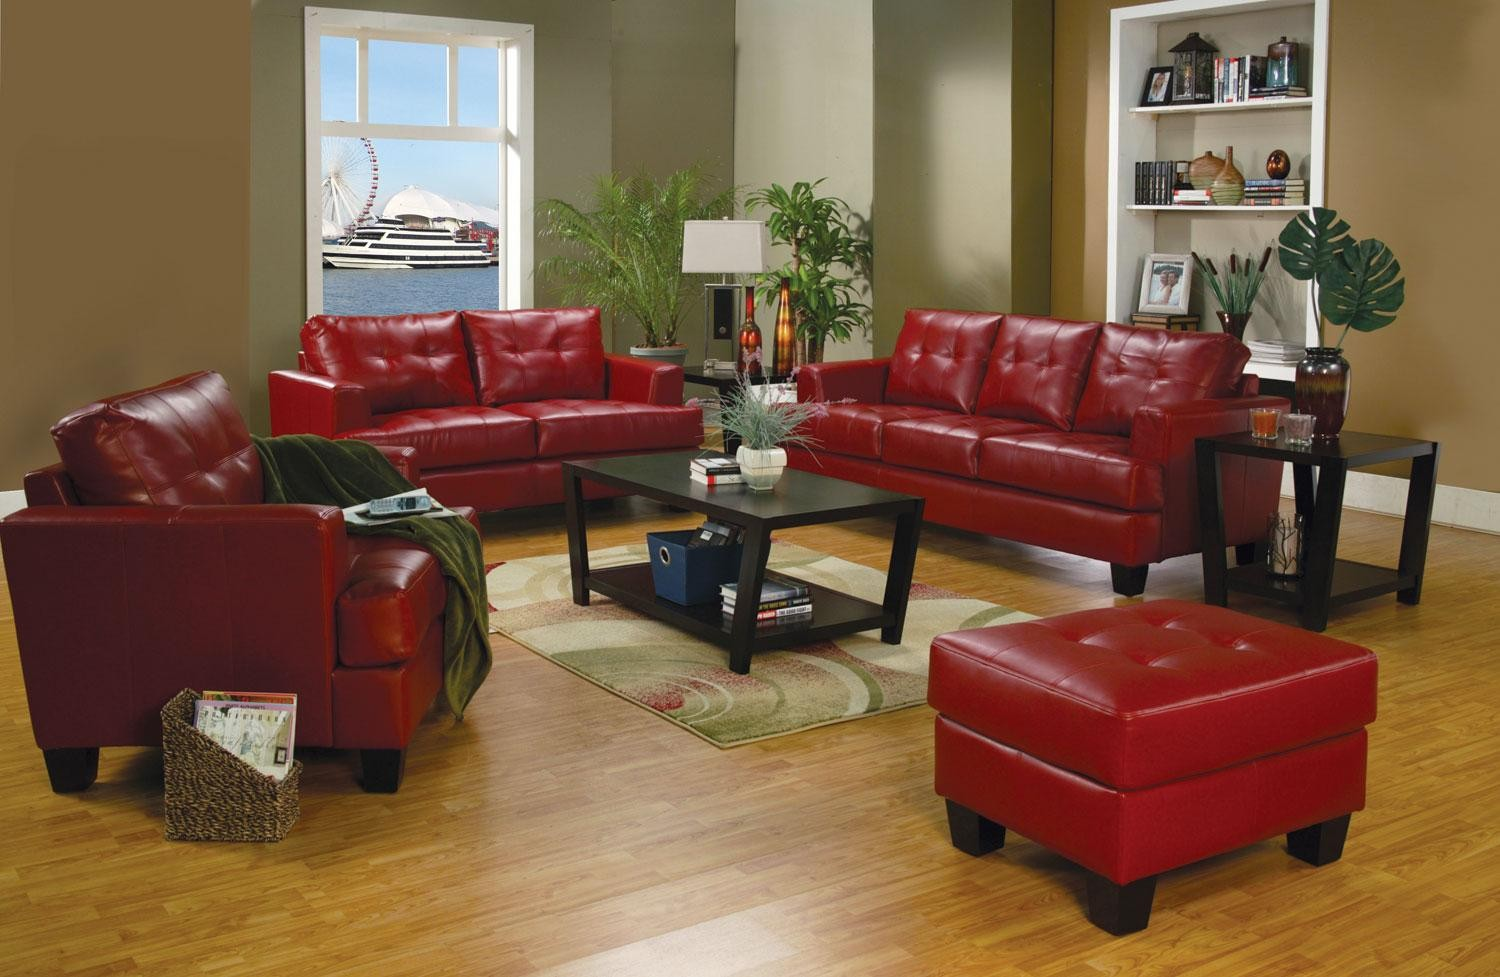 Leather Living Room Chair Samuel Red Leather Living Room Set 501831 From Coaster